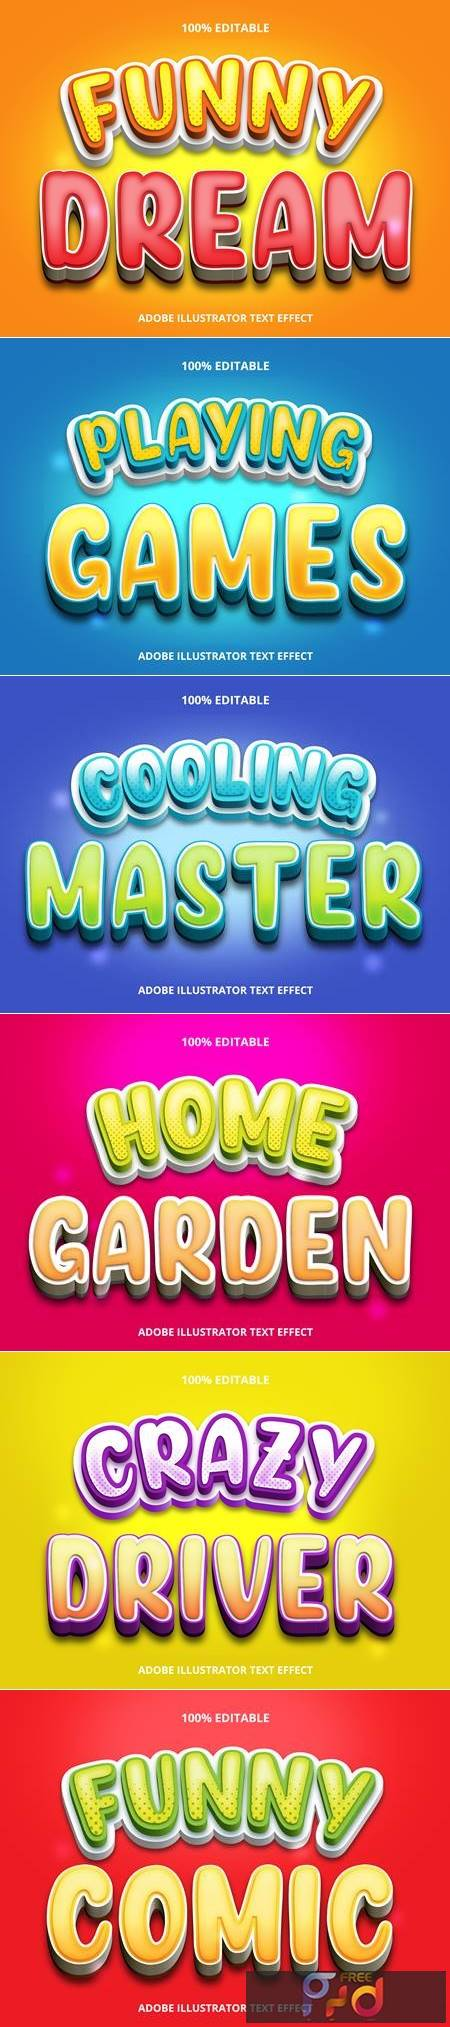 Editable font effect text collection illustration design 89 1